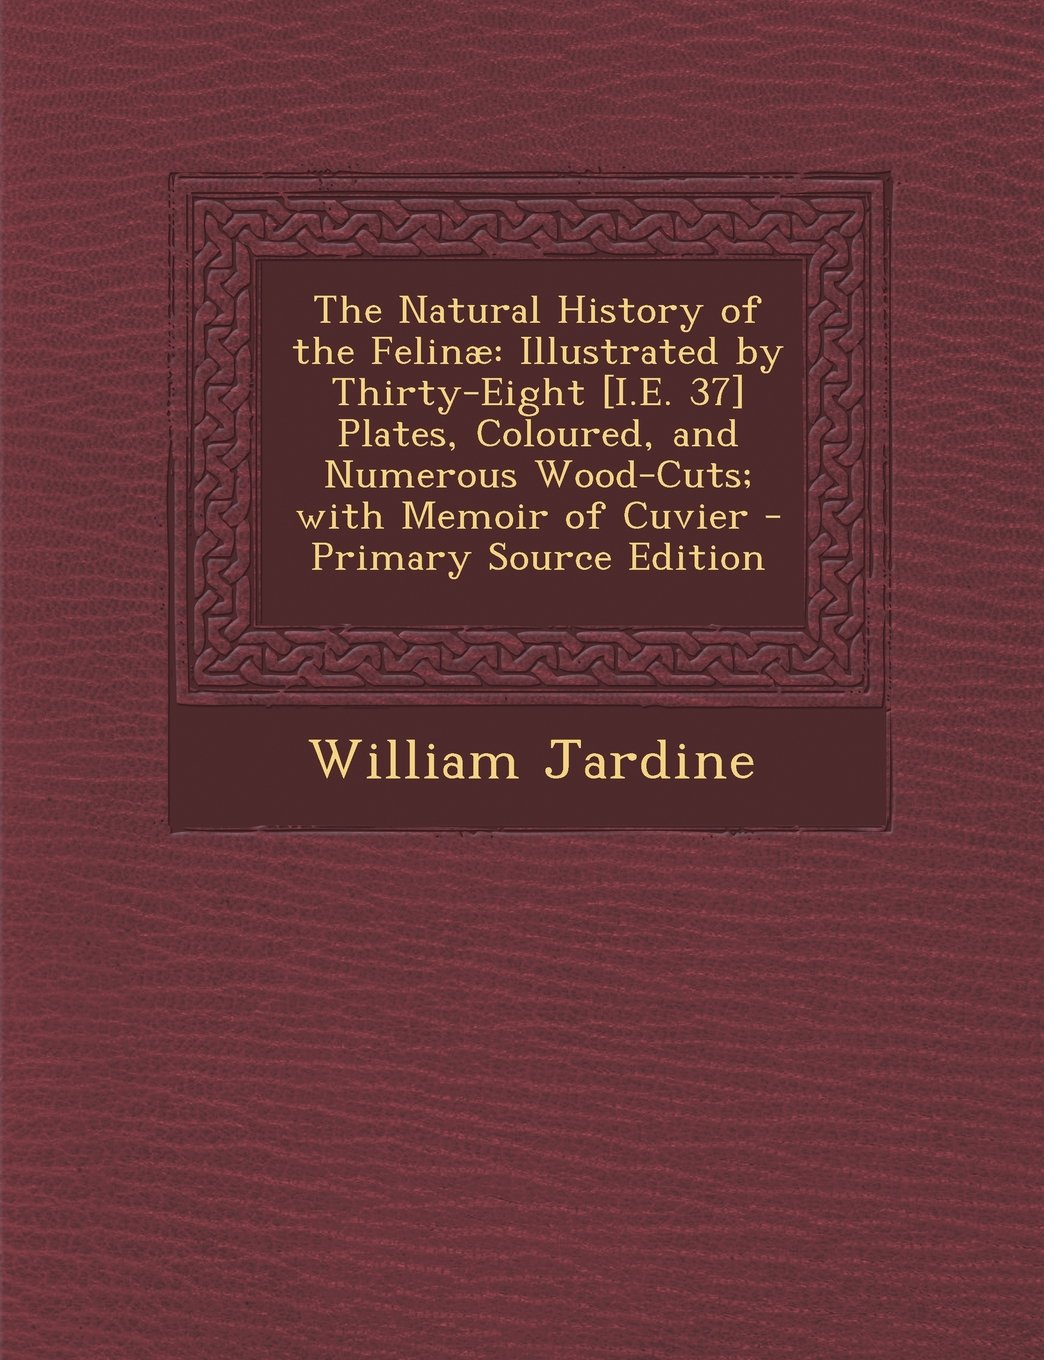 The Natural History of the Felinae: Illustrated by Thirty-Eight [I.E. 37] Plates, Coloured, and Numerous Wood-Cuts; With Memoir of Cuvier - Primary So pdf epub